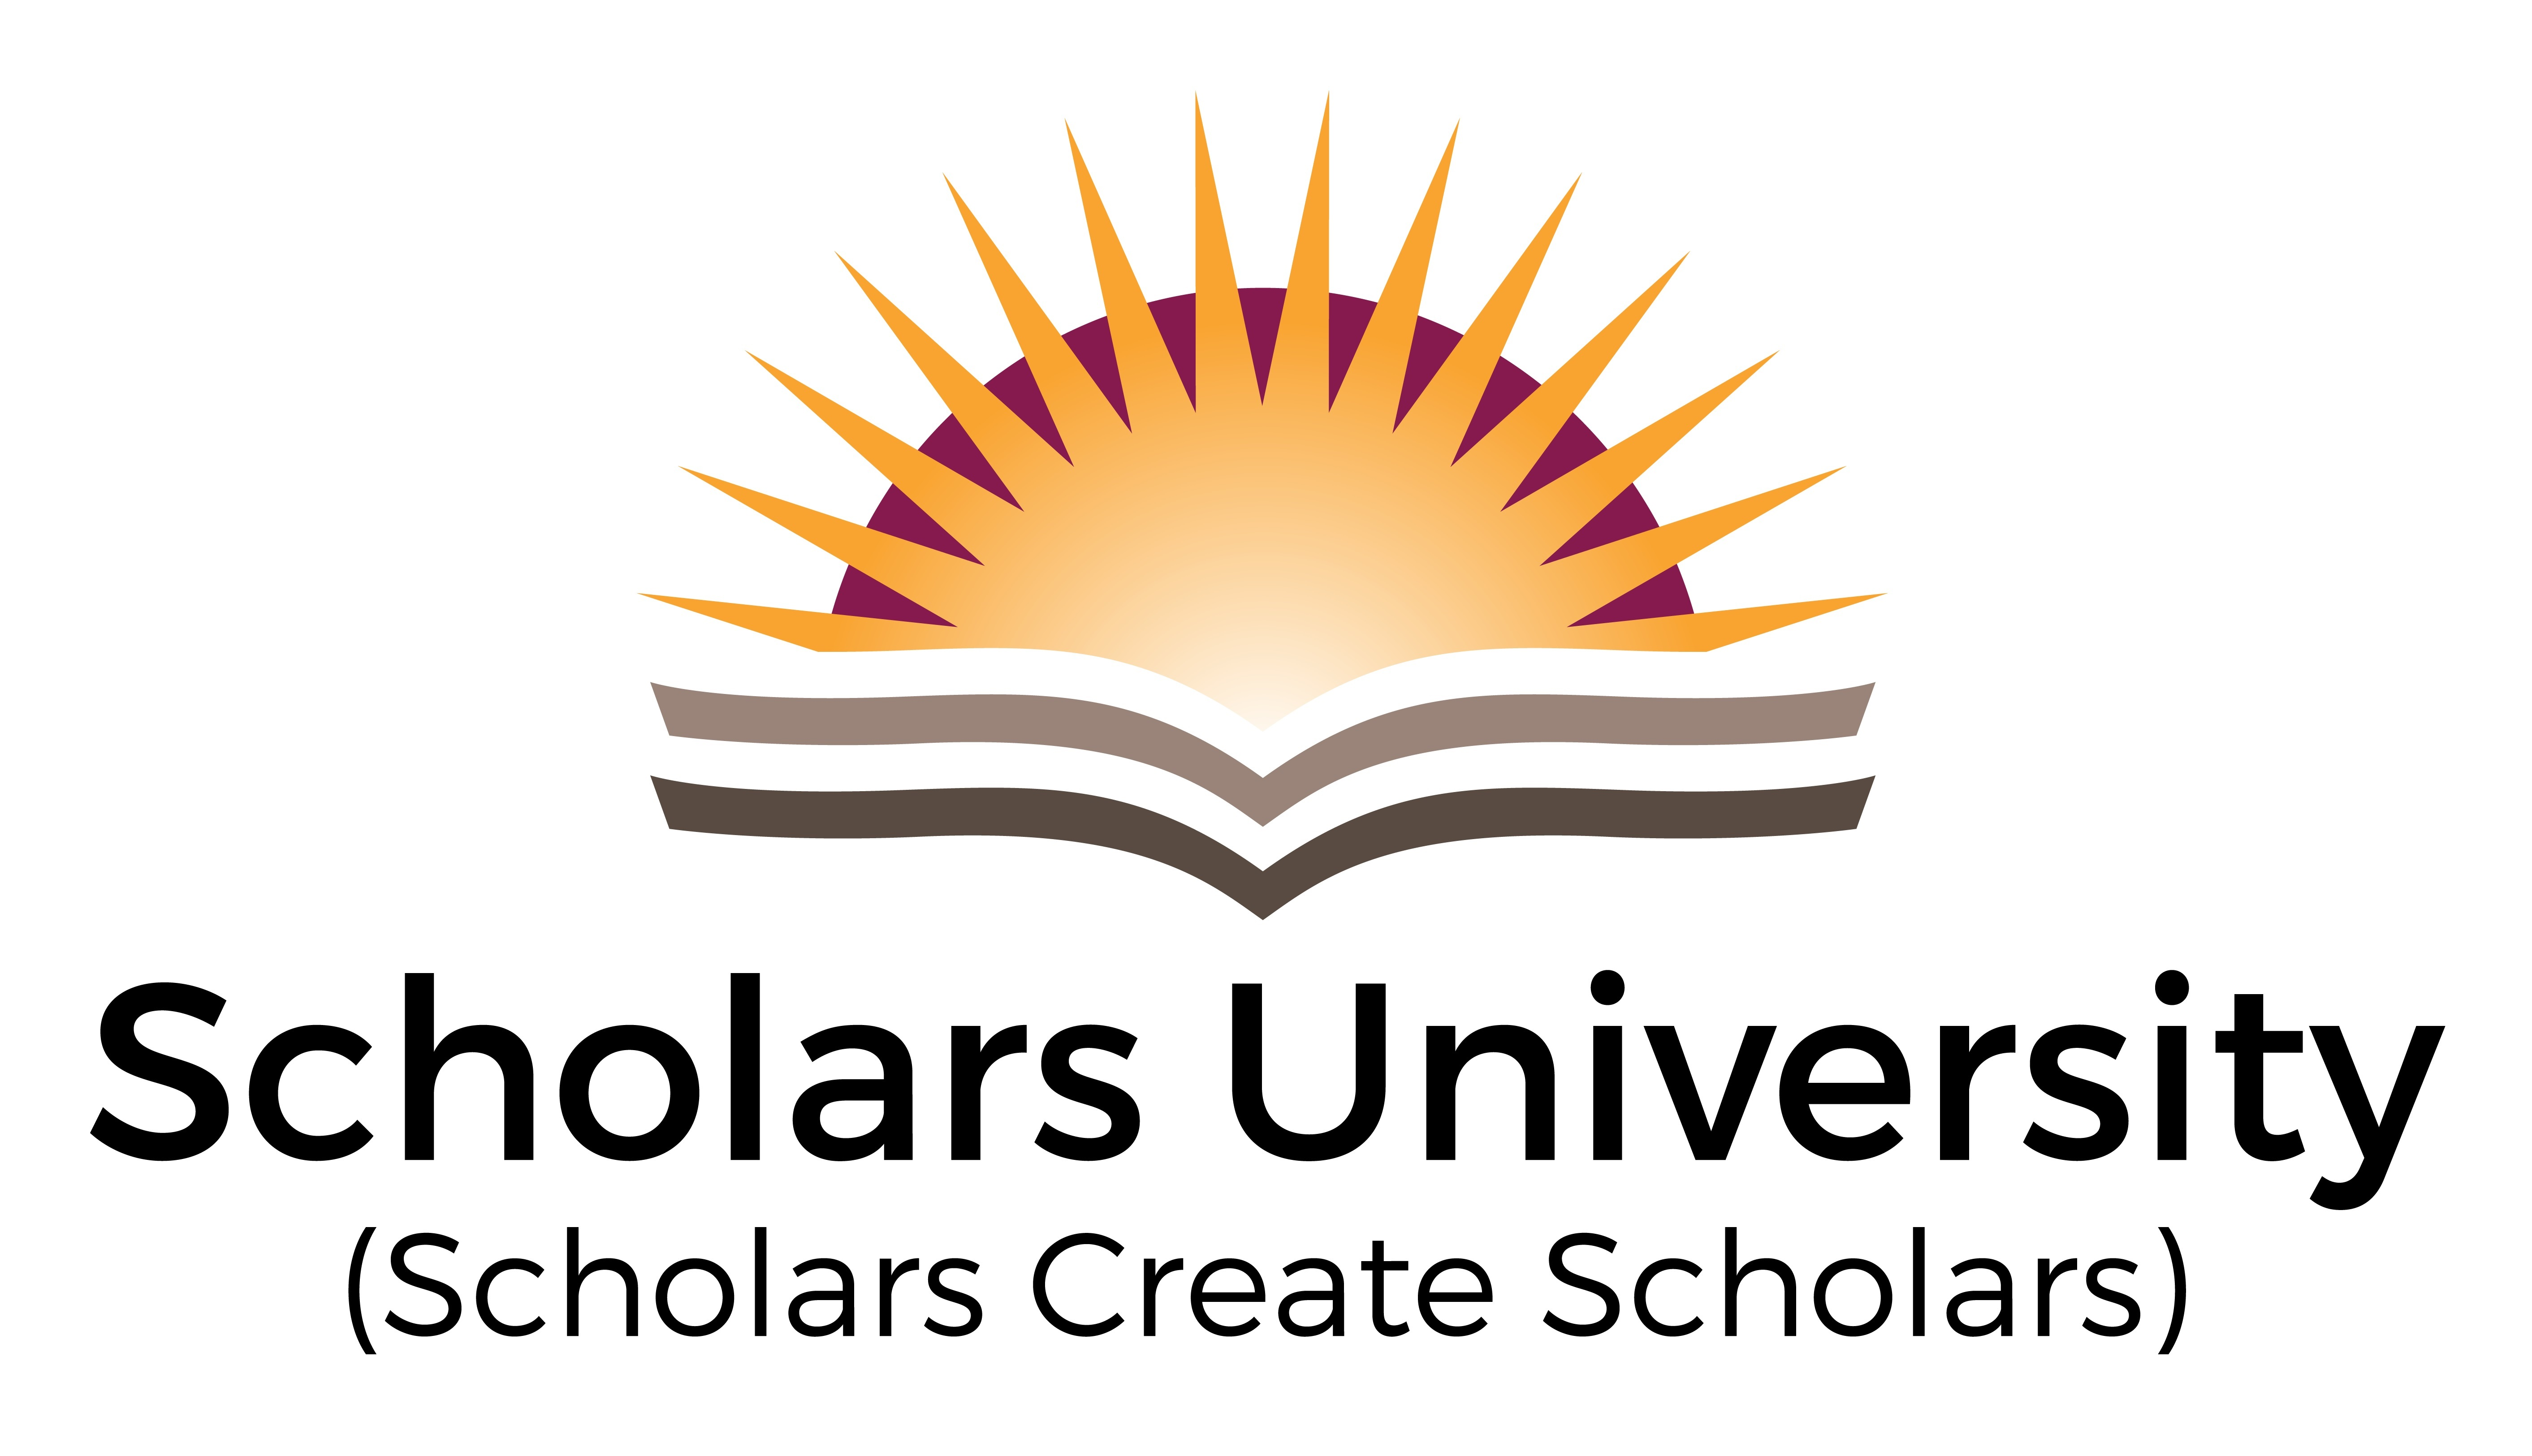 Scholars home logo pictures.